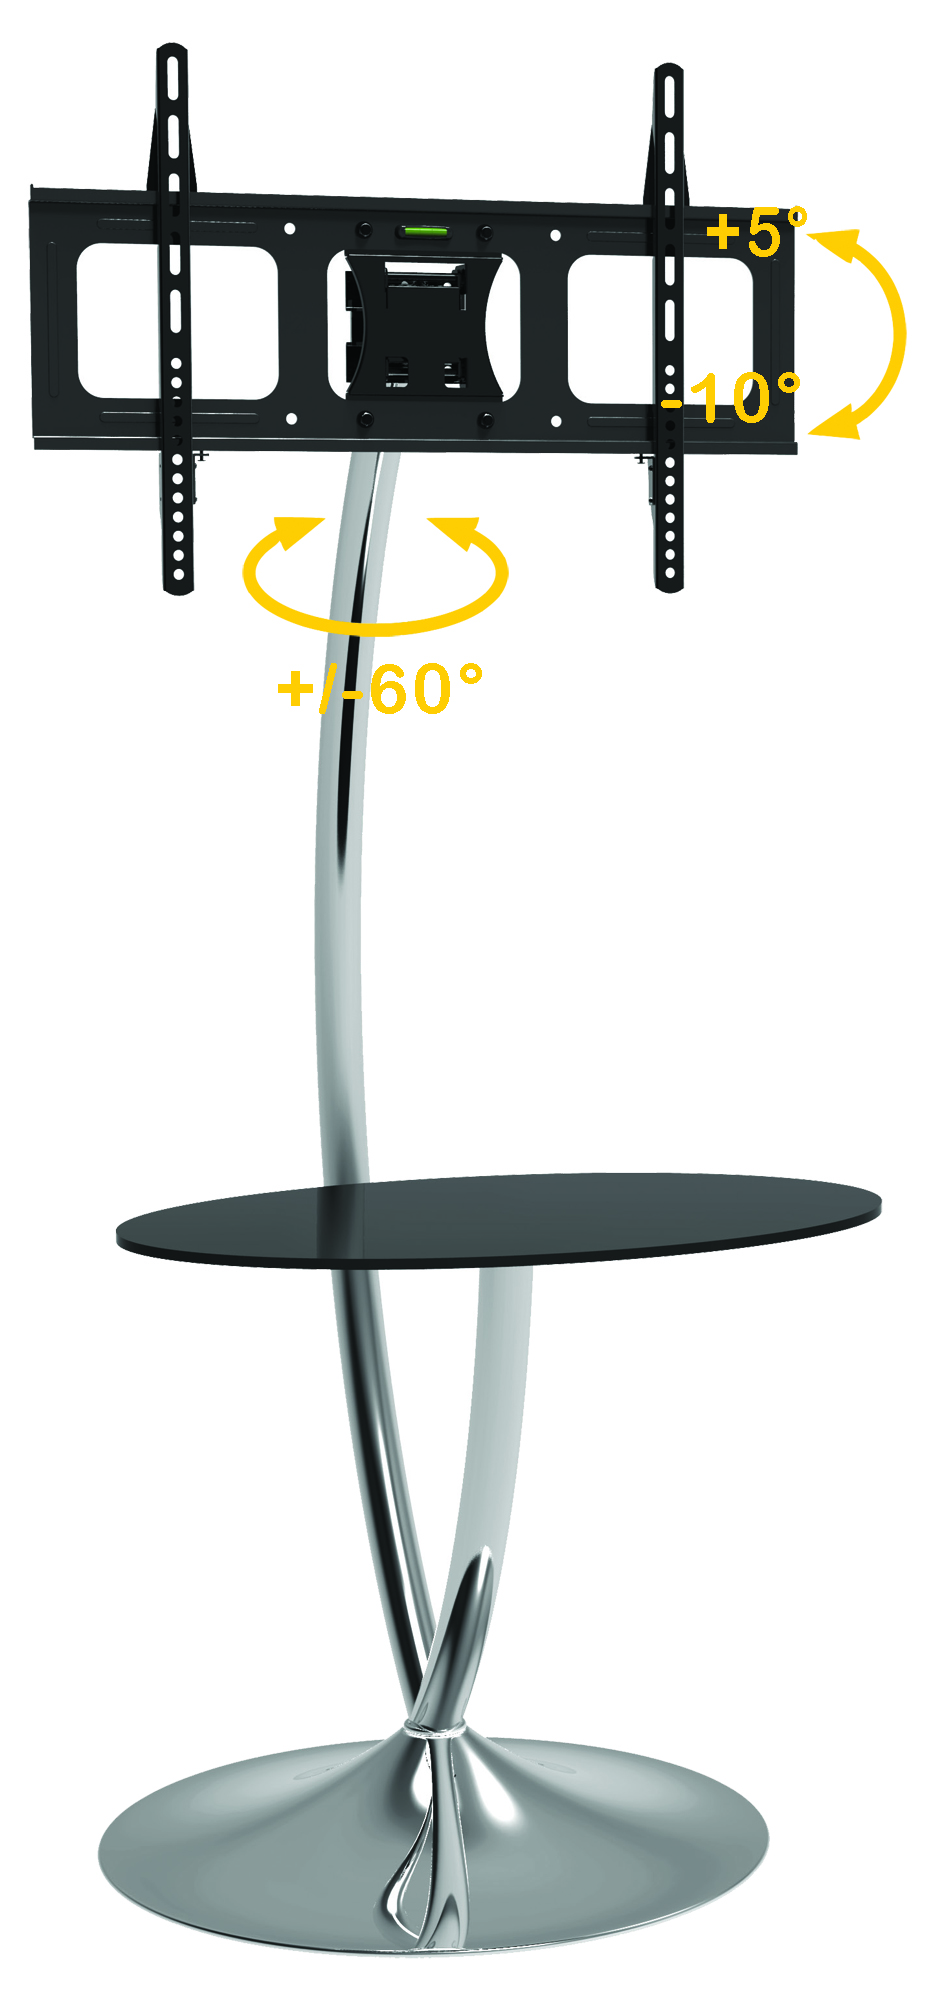 Supporto Tv Con Mensole Free Standing Floor Support With Round Base And Shelf For Lcd Led Tv 32 70